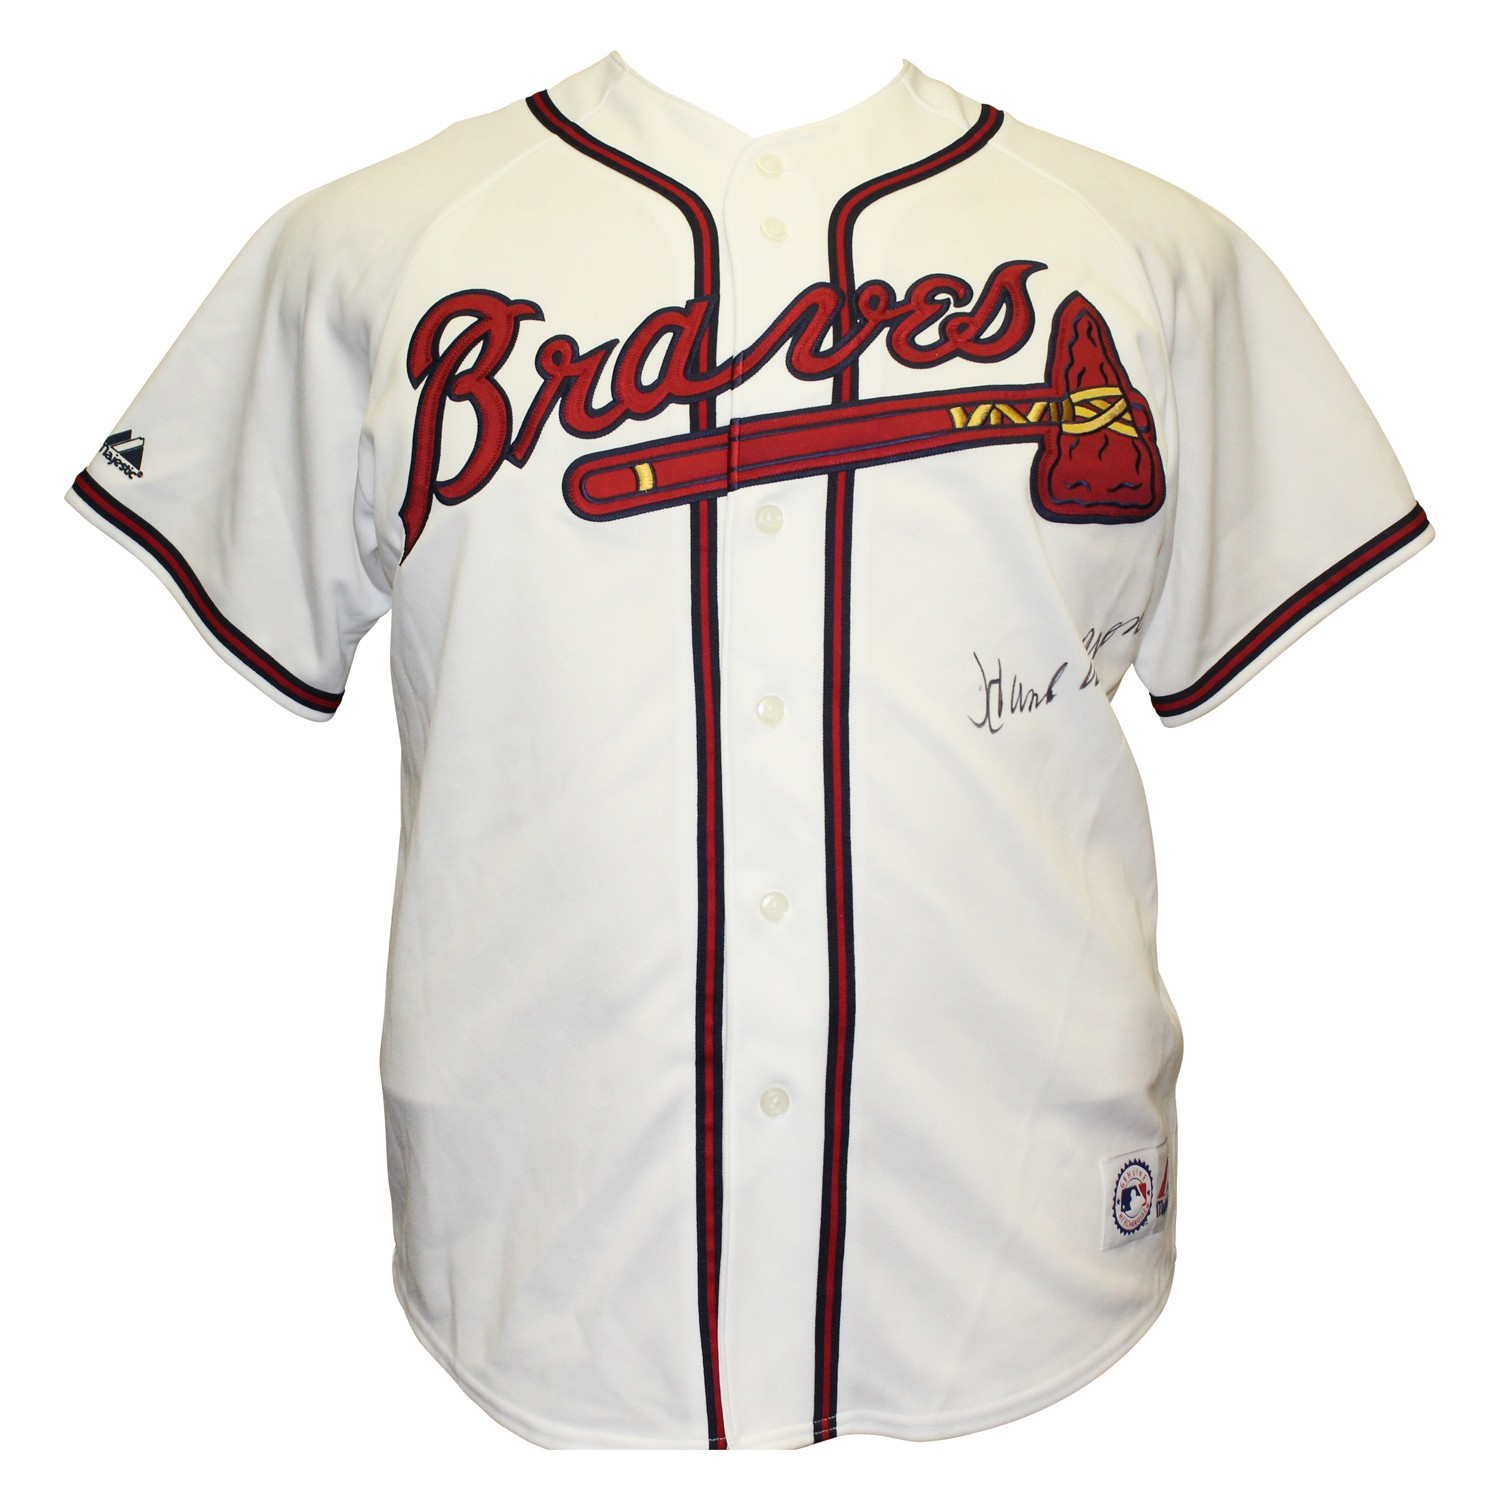 brand new 11509 e5210 Hank Aaron Autographed Signed Atlanta Braves Majestic MLB ...